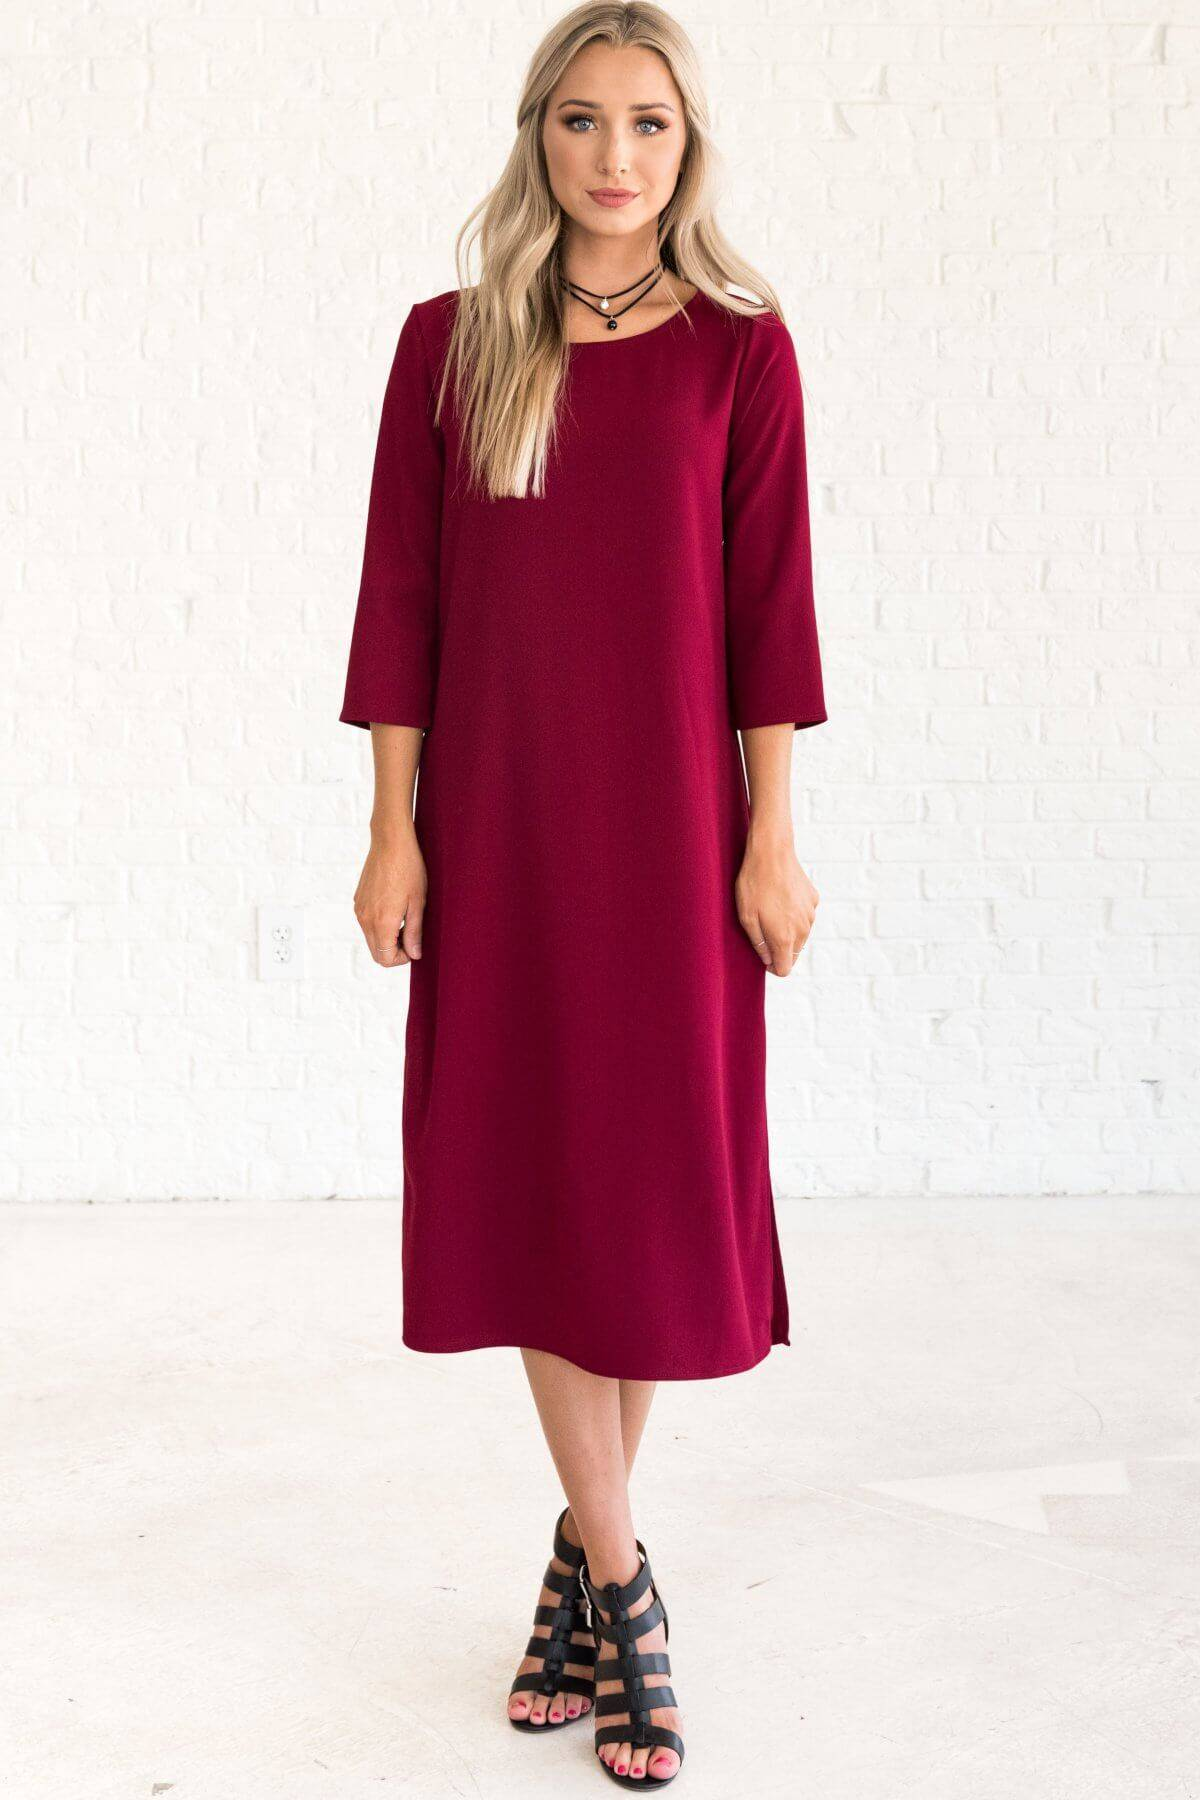 Burgundy Red 3/4 Sleeve Midi Dresses Affordable Online Boutique